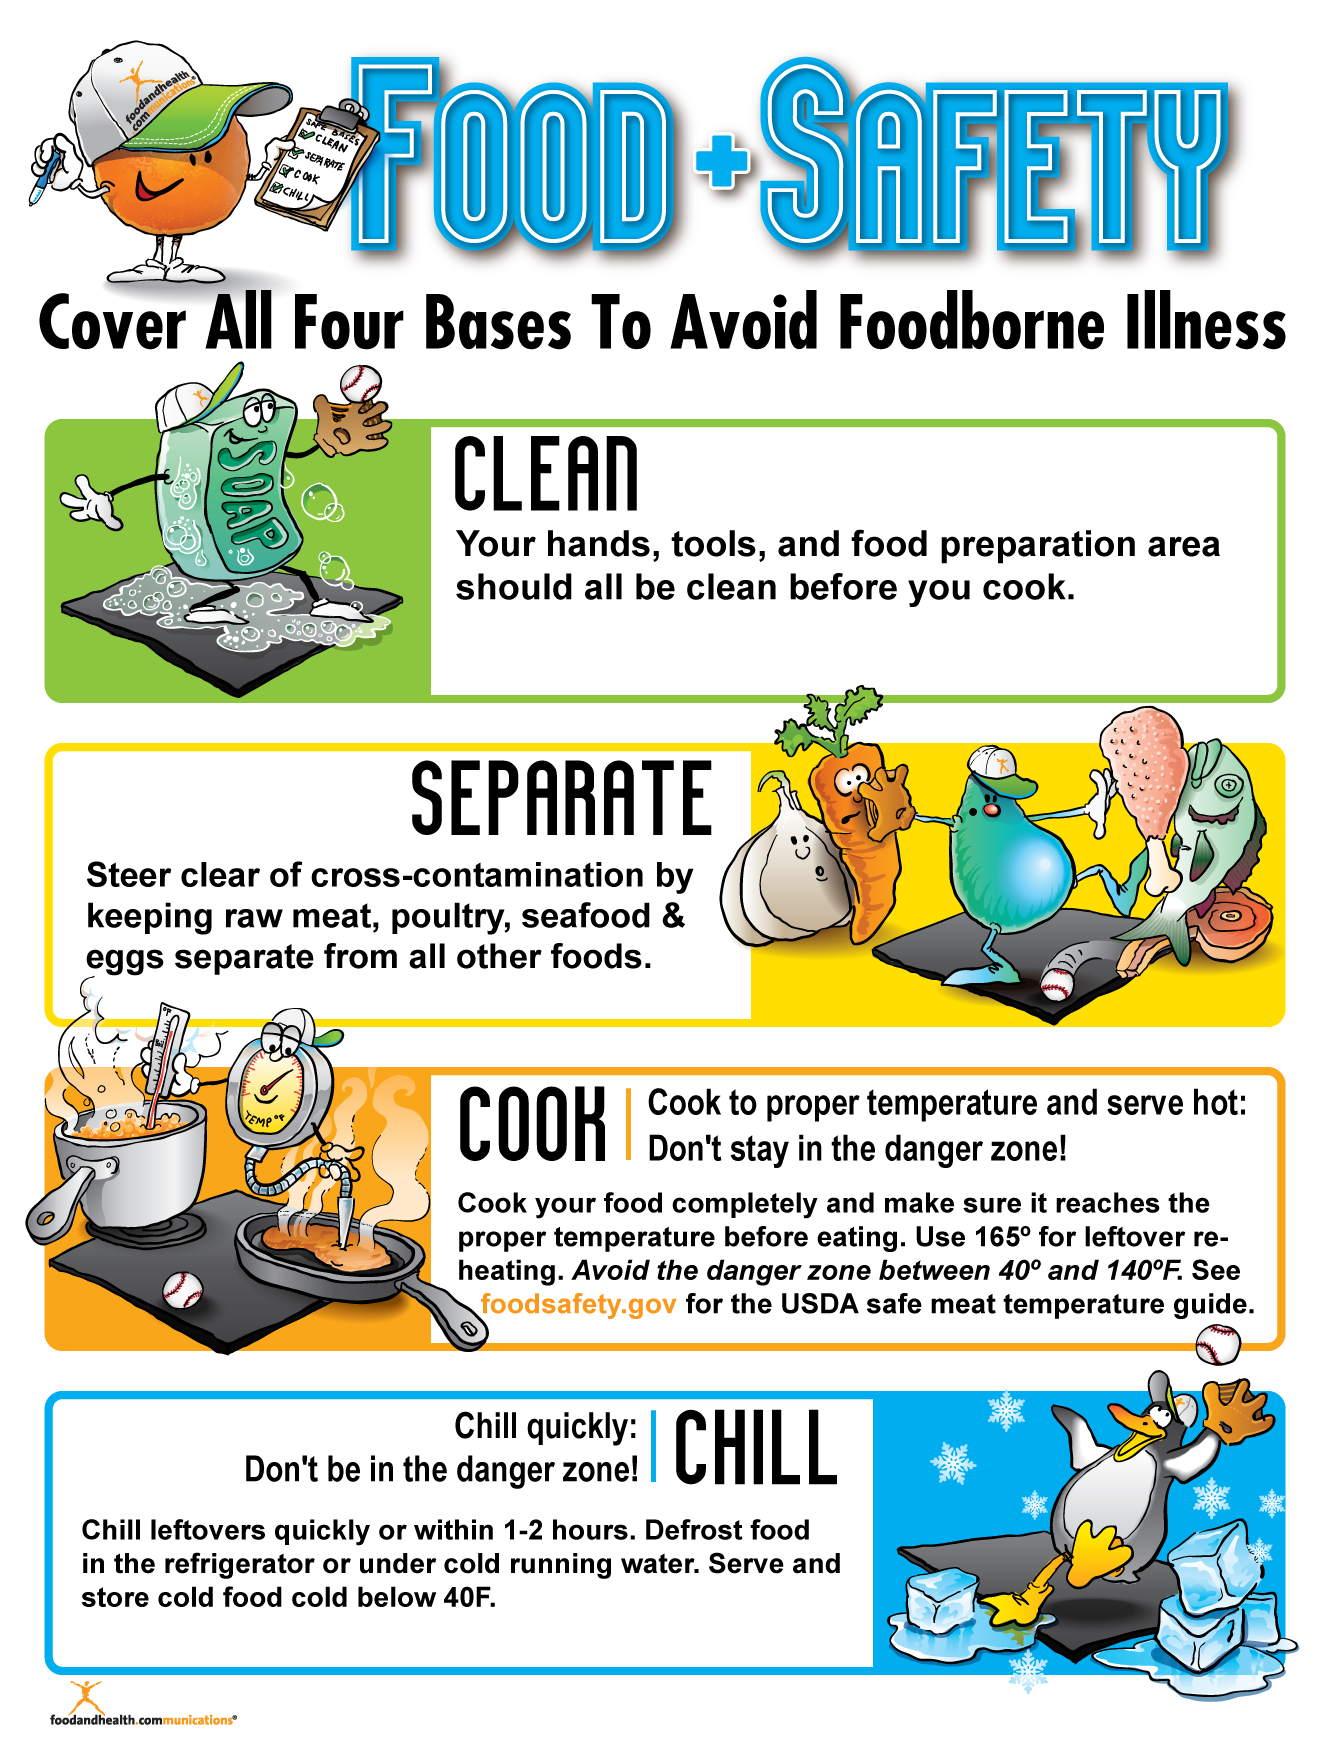 Which Storage Method May Cause Tcs Food To Become Unsafe Interesting Food Safety Poster  Pinterest  Food Safety Safety Posters And Safety